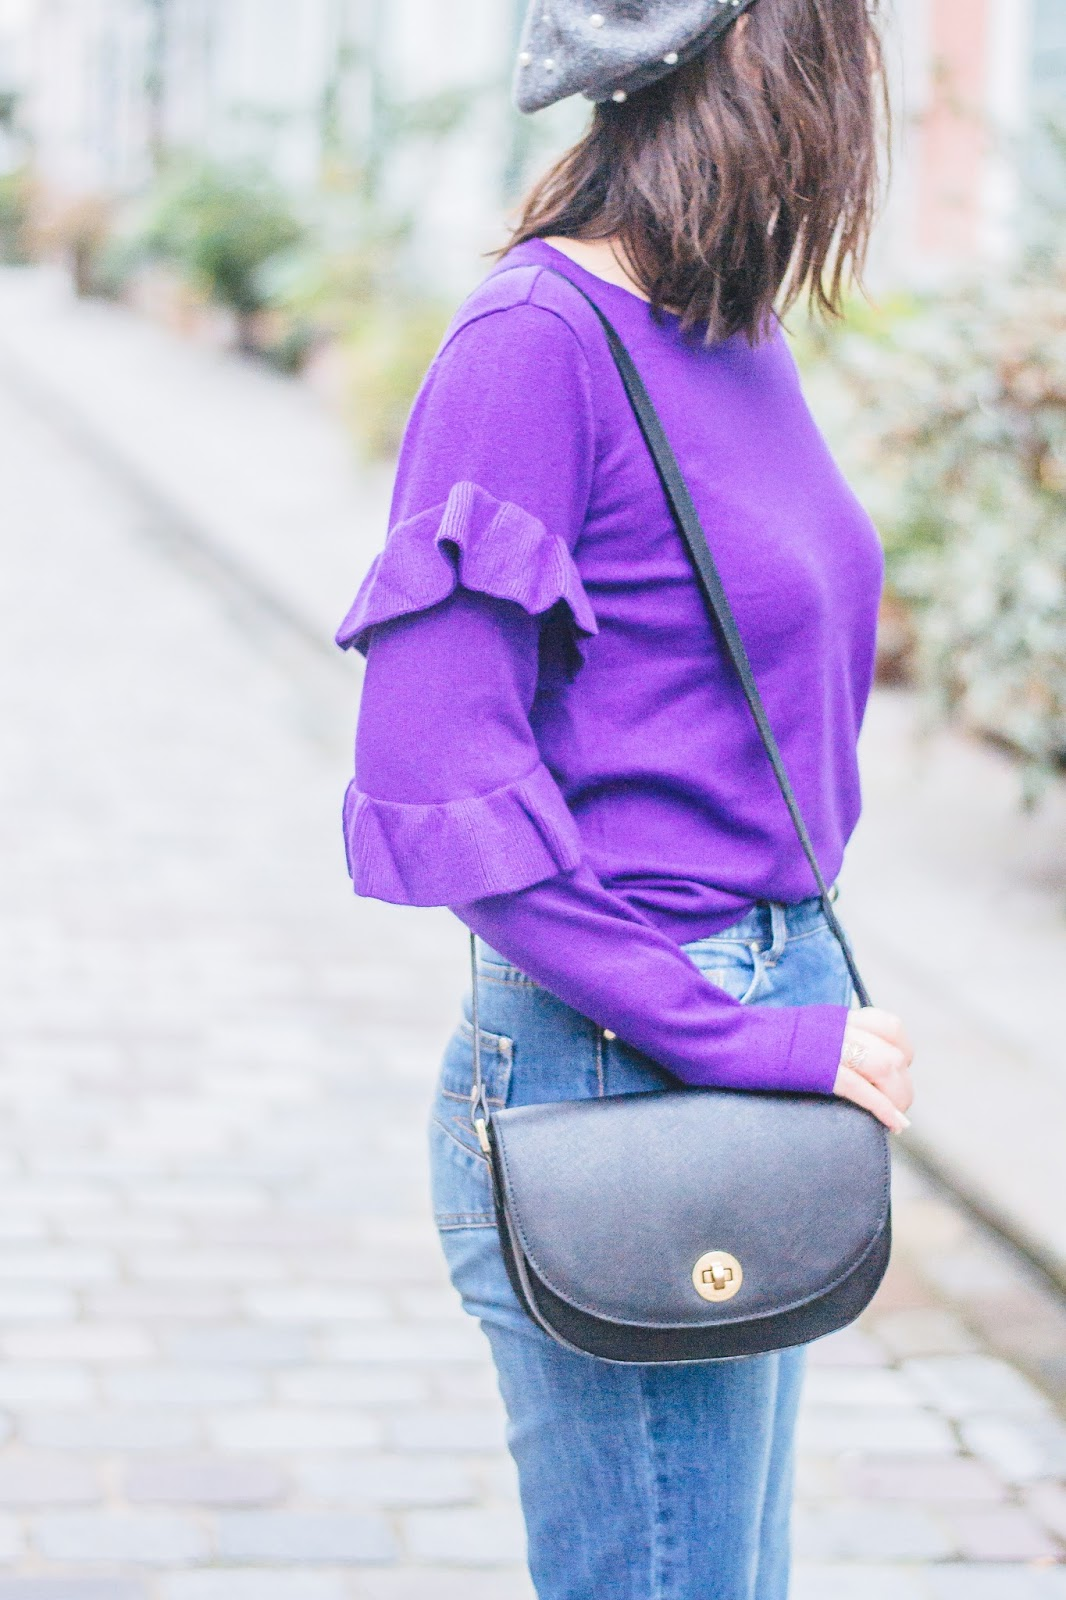 paris-france-fashionblogger-look-style-mode-streetstyle-cute